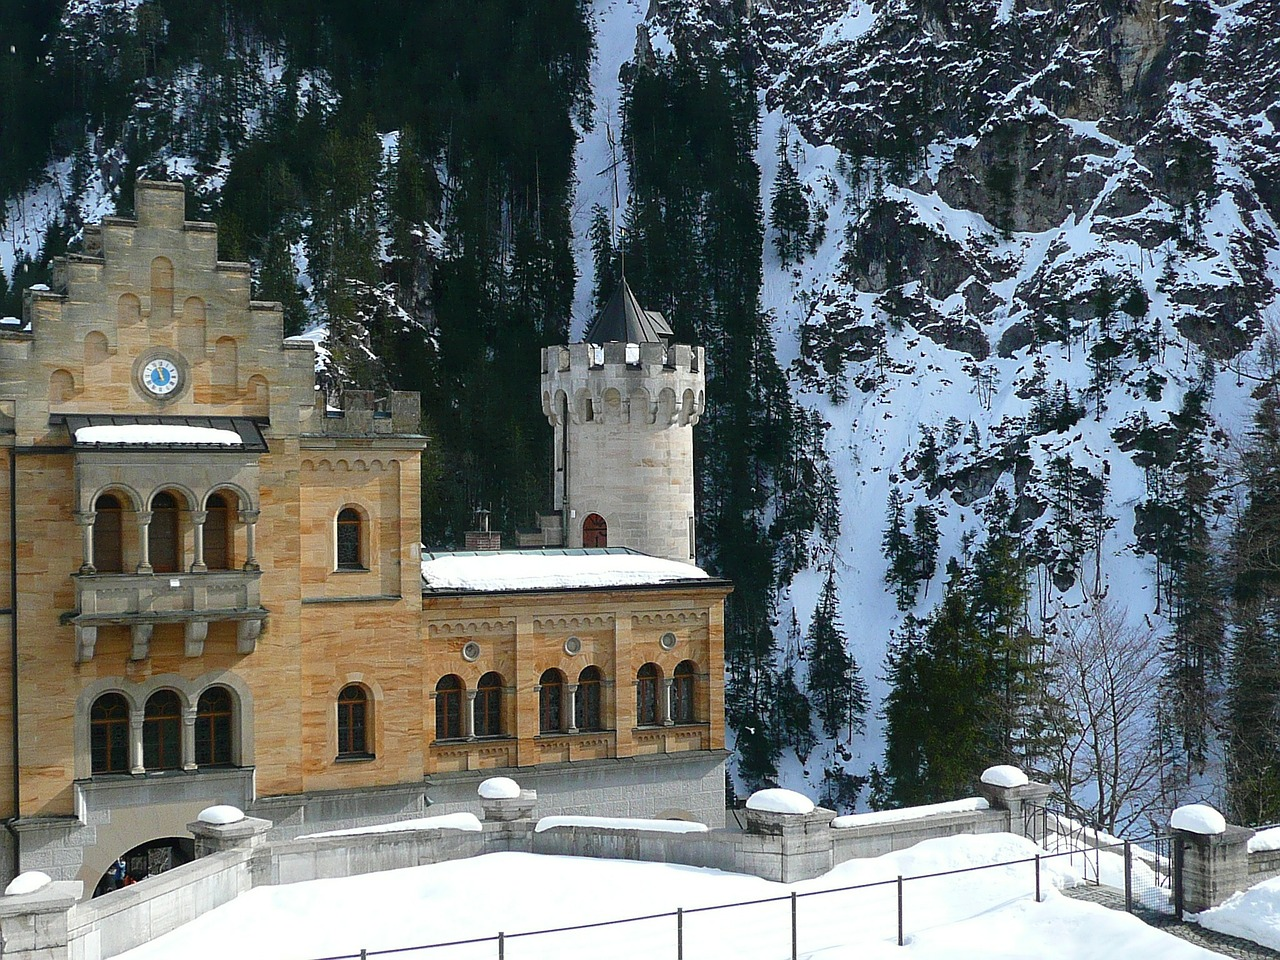 hohenschwangau closed castle free photo